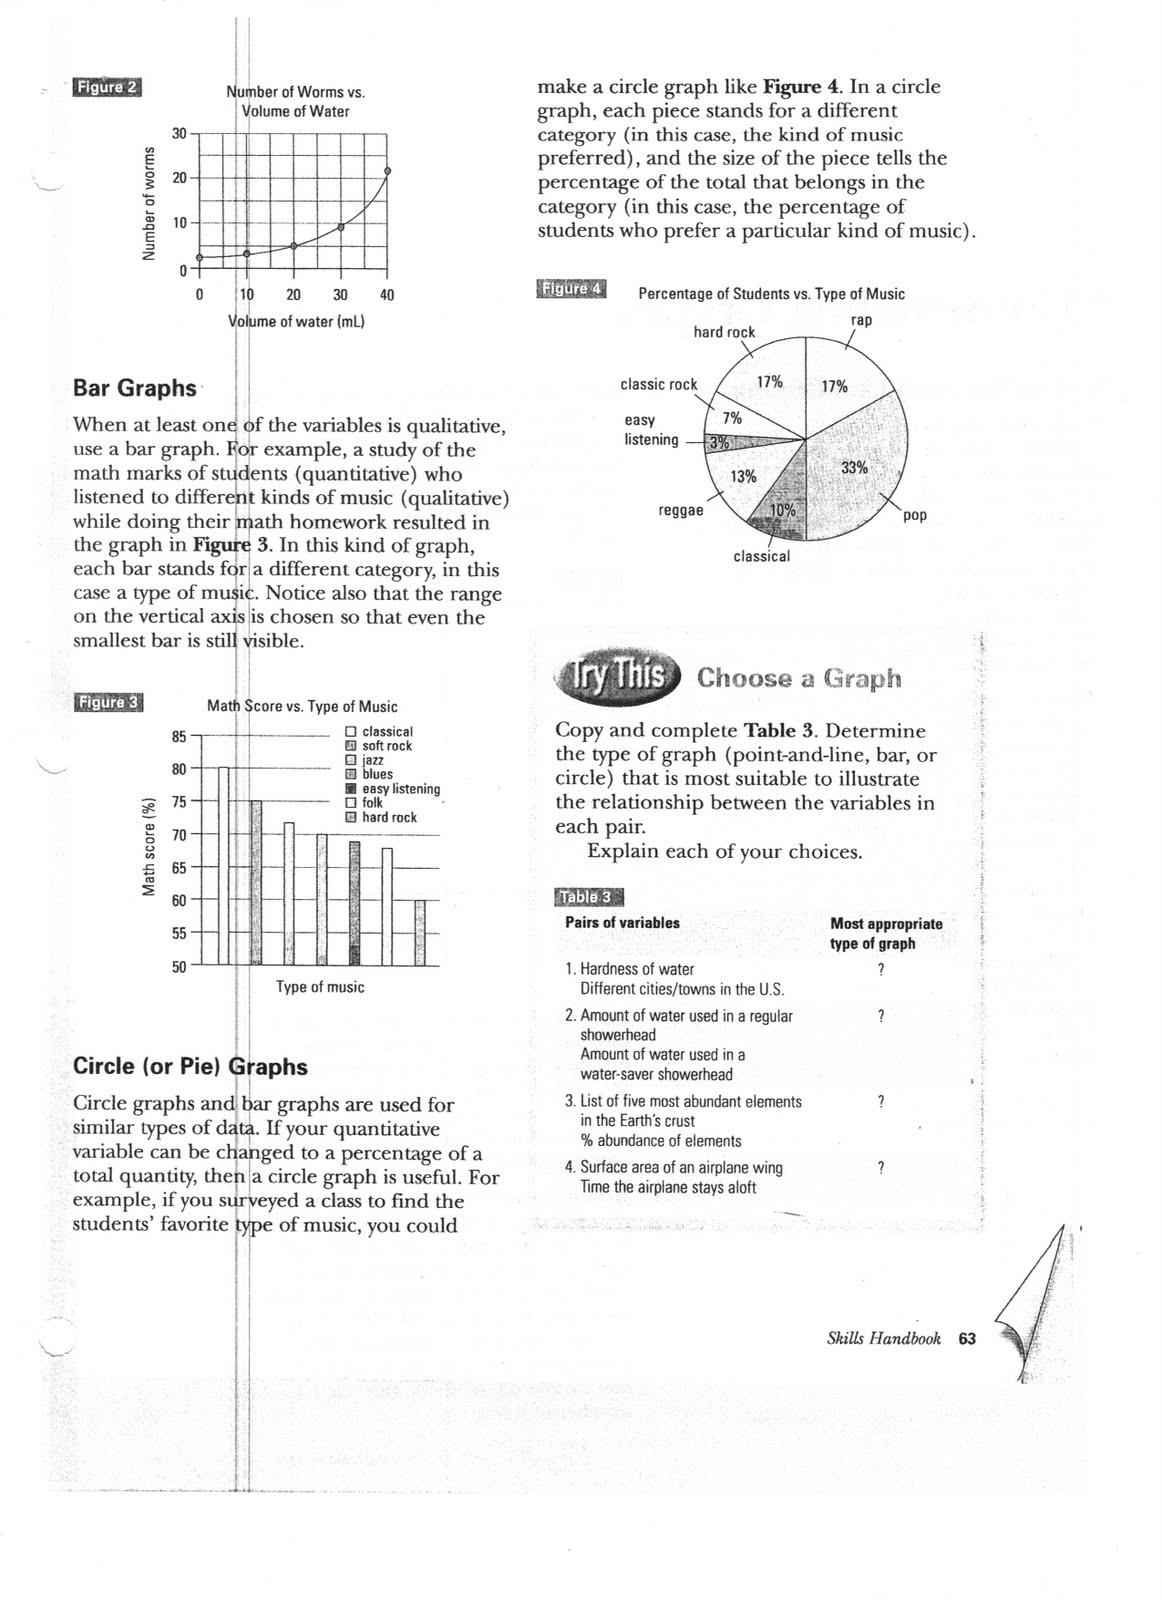 Worksheets Restriction Enzyme Worksheet collection of restriction enzyme worksheet sharebrowse photos beatlesblogcarnival